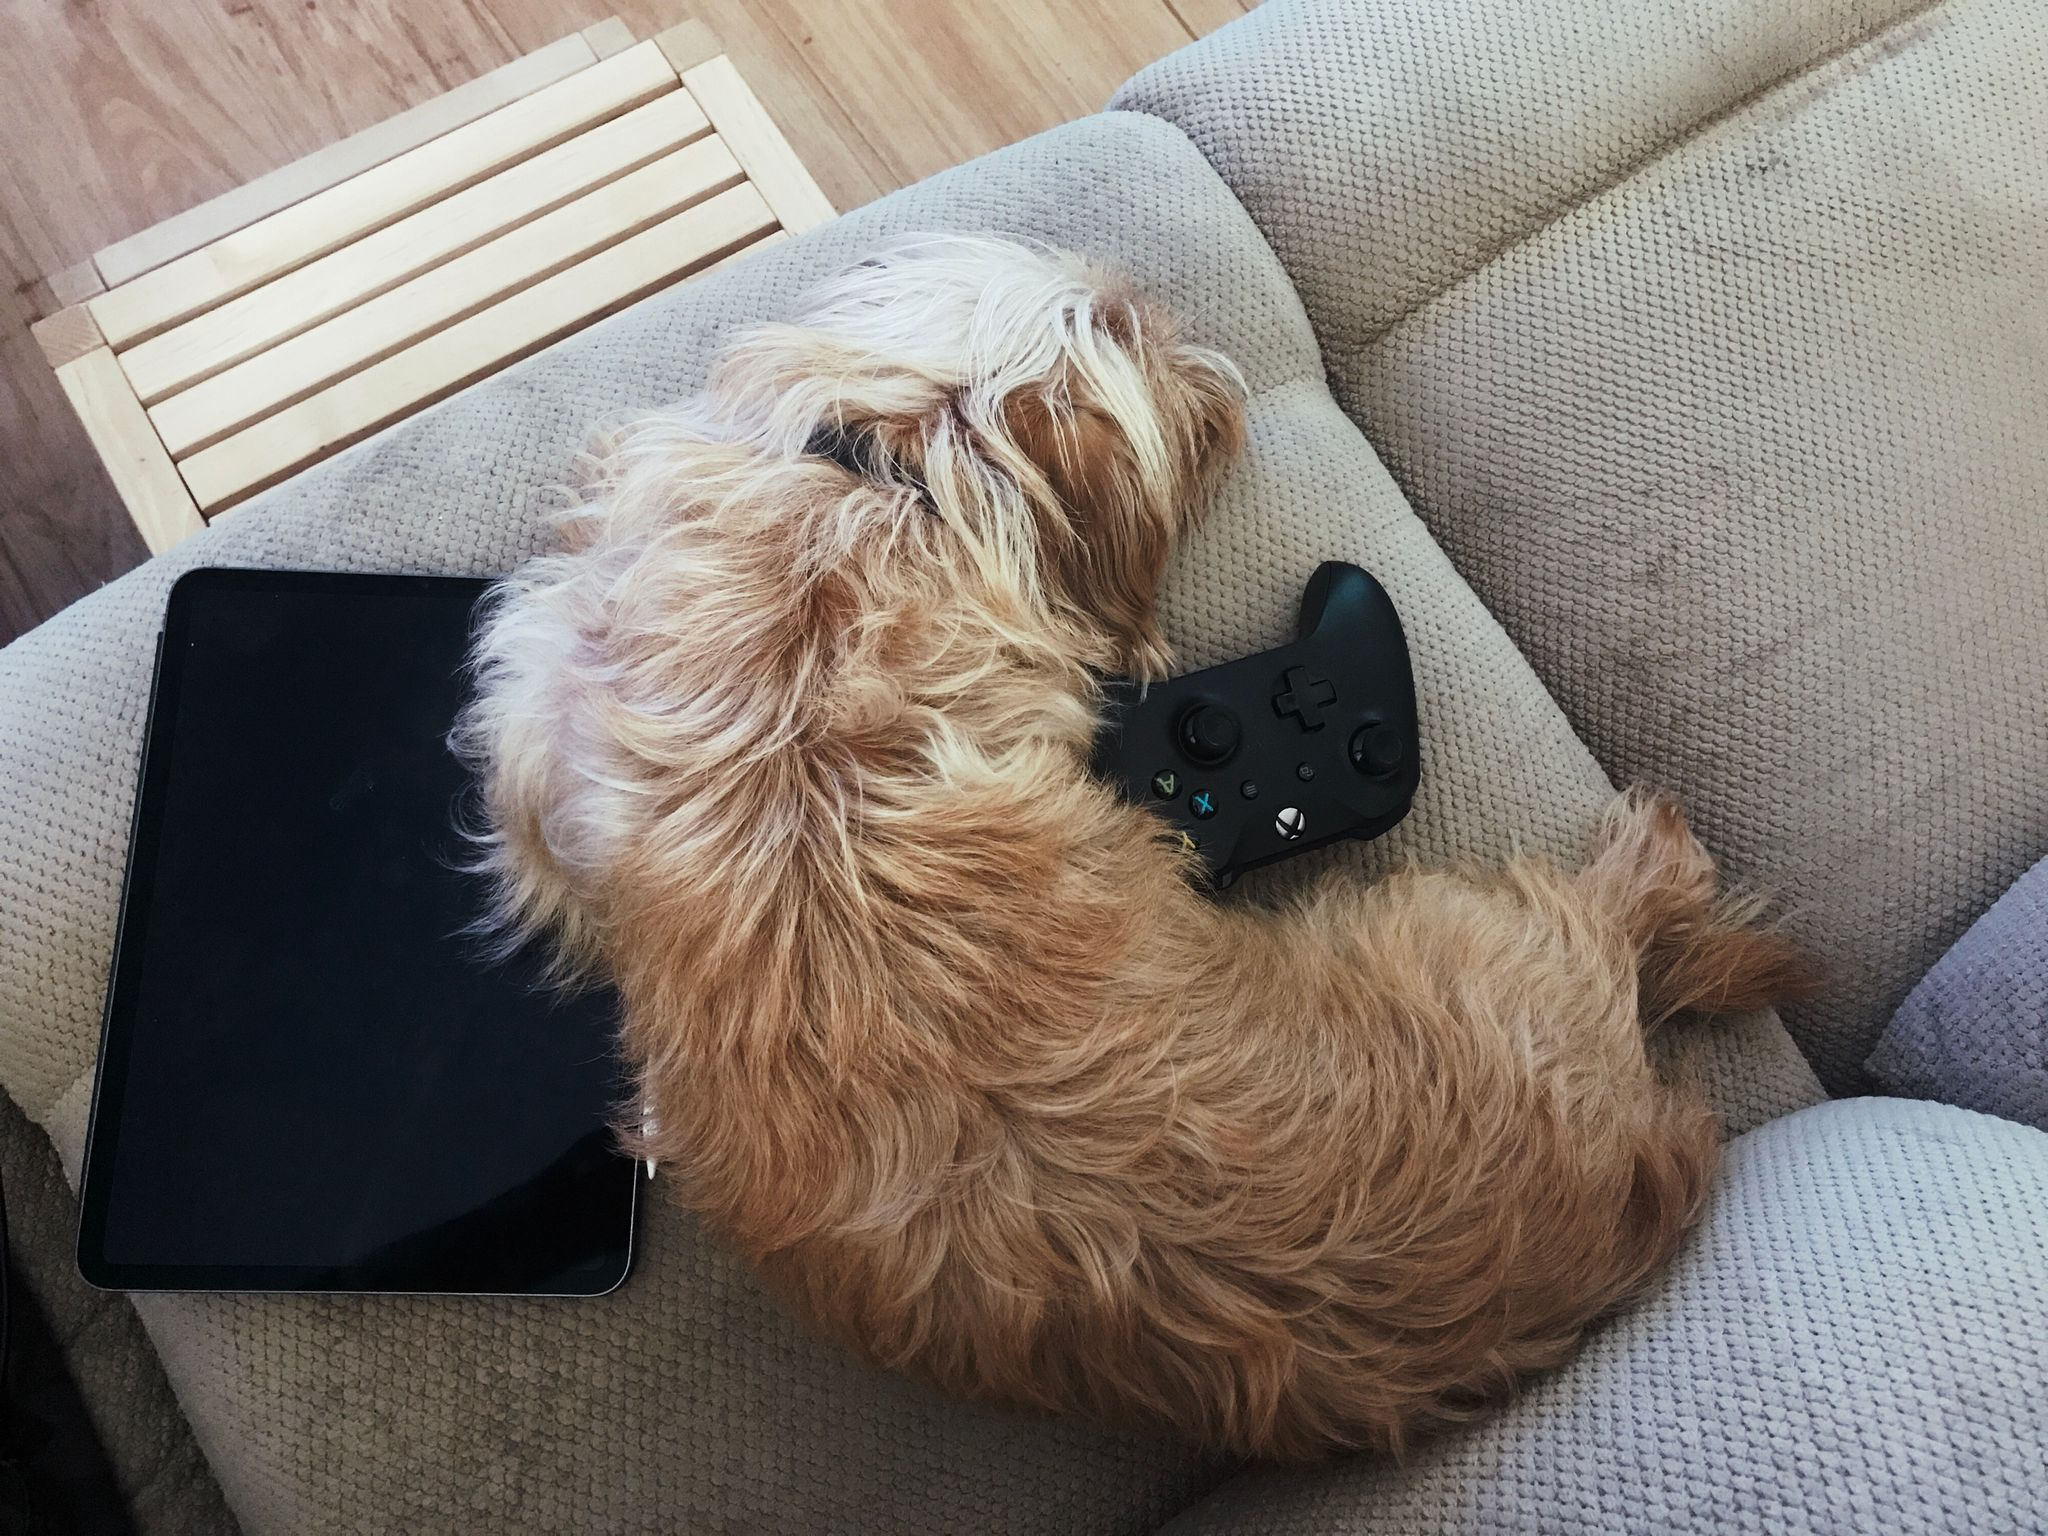 A small scruffy blonde dog lying on a lounge, partially on an iPad and partially on an Xbox controller.